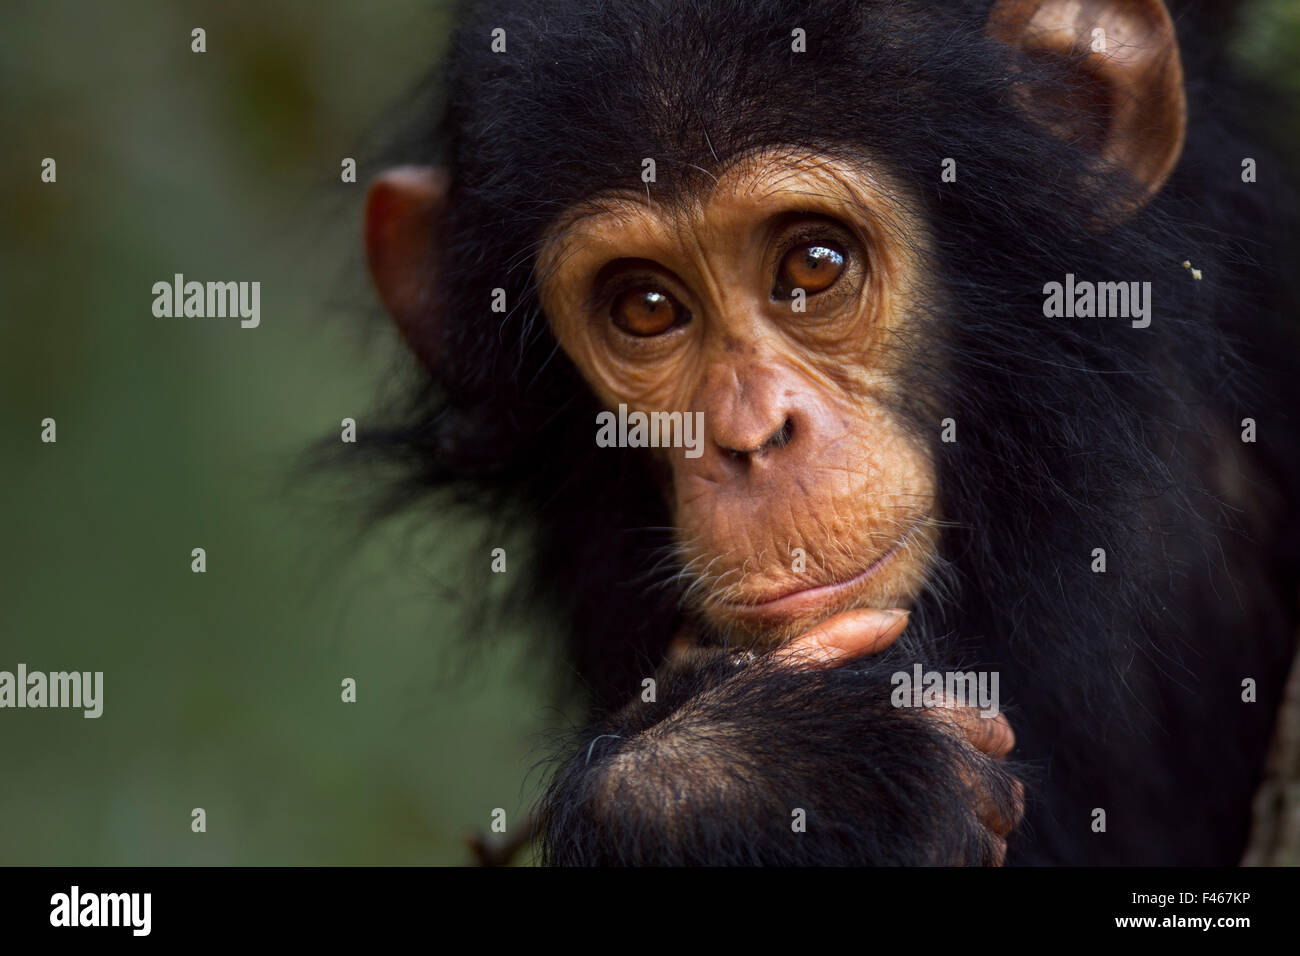 Eastern chimpanzee (Pan troglodytes schweinfurtheii) male baby 'Gizmo' aged 1-2 years portrait. Gombe National - Stock Image